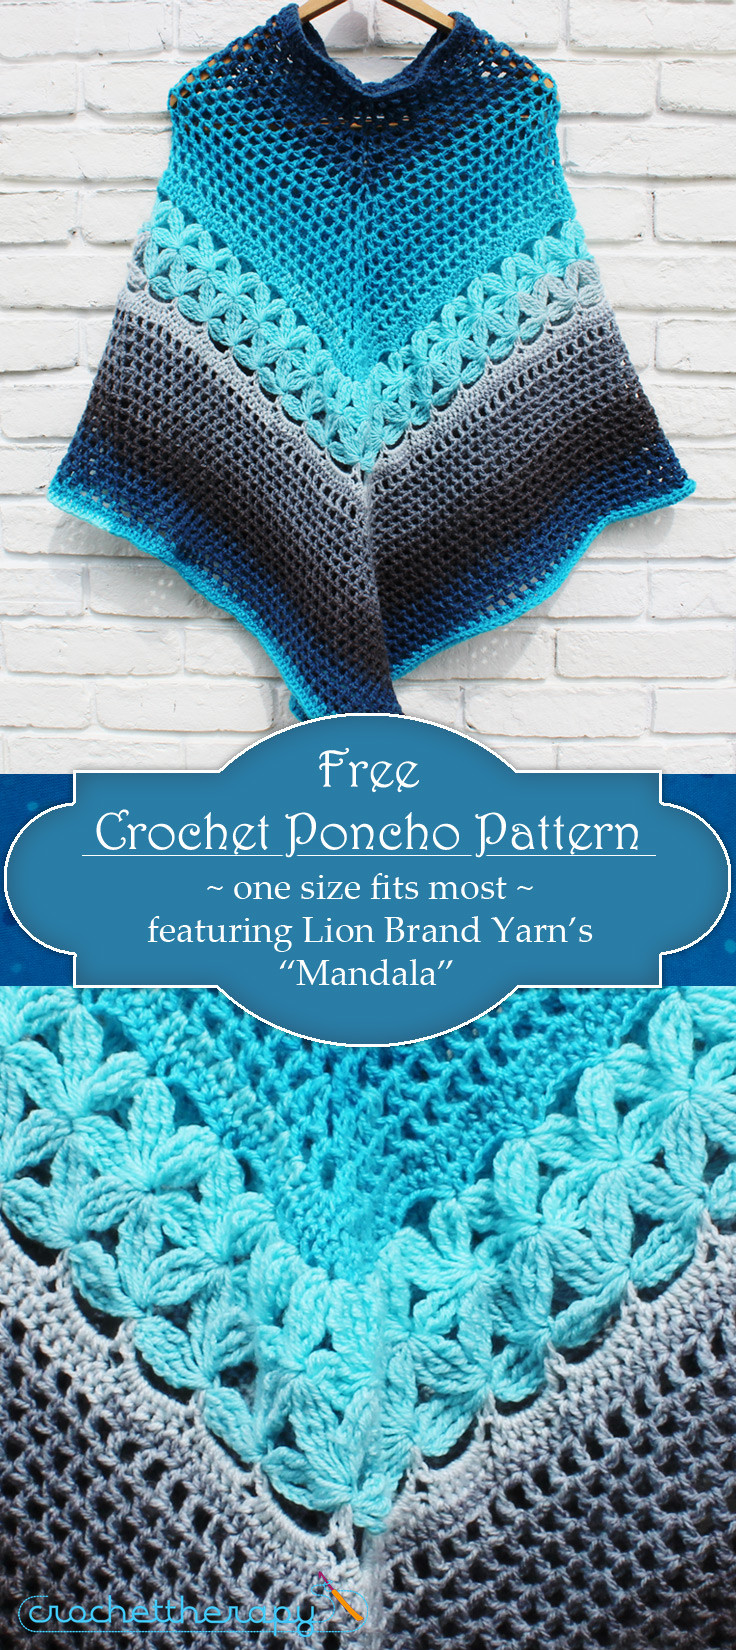 Free Mandala Crochet Patterns Unique Free Crochet Yarn Cake Poncho Pattern Mandala Yarn Of Innovative 45 Models Free Mandala Crochet Patterns